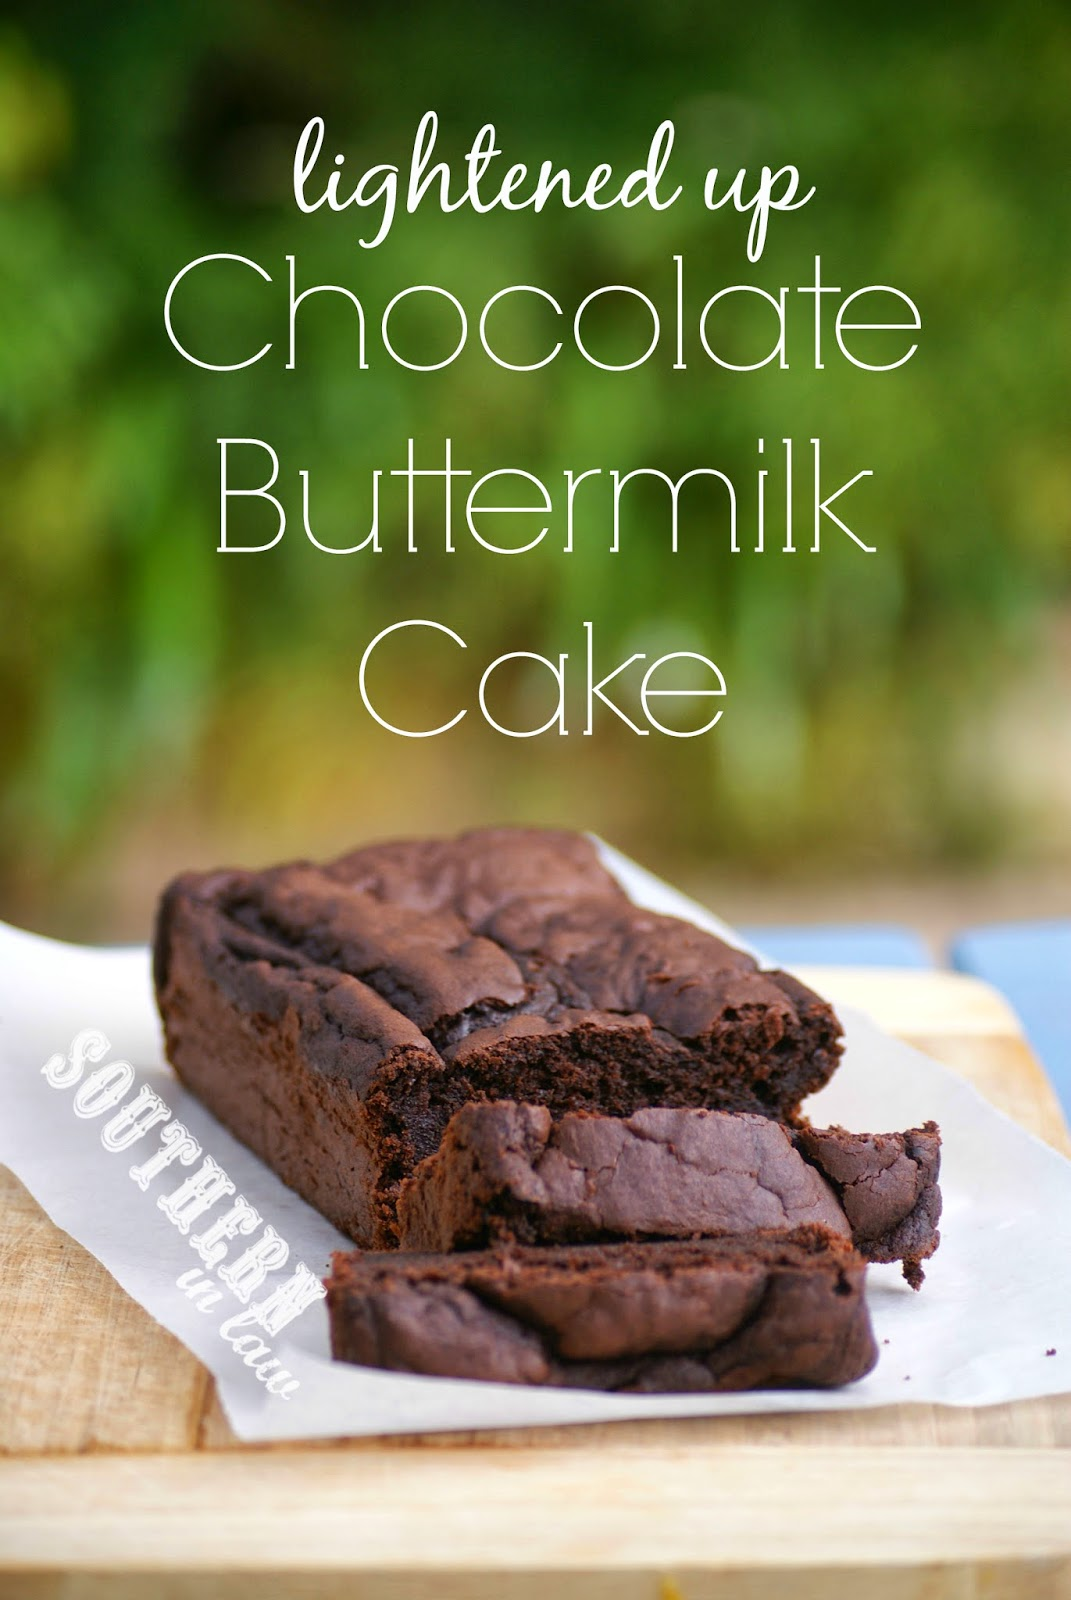 Healthy Buttermilk Chocolate Cake Recipe - Gluten Free, Low Fat, Low Sugar, Healthier, Lightened Up, Skinny Recipe